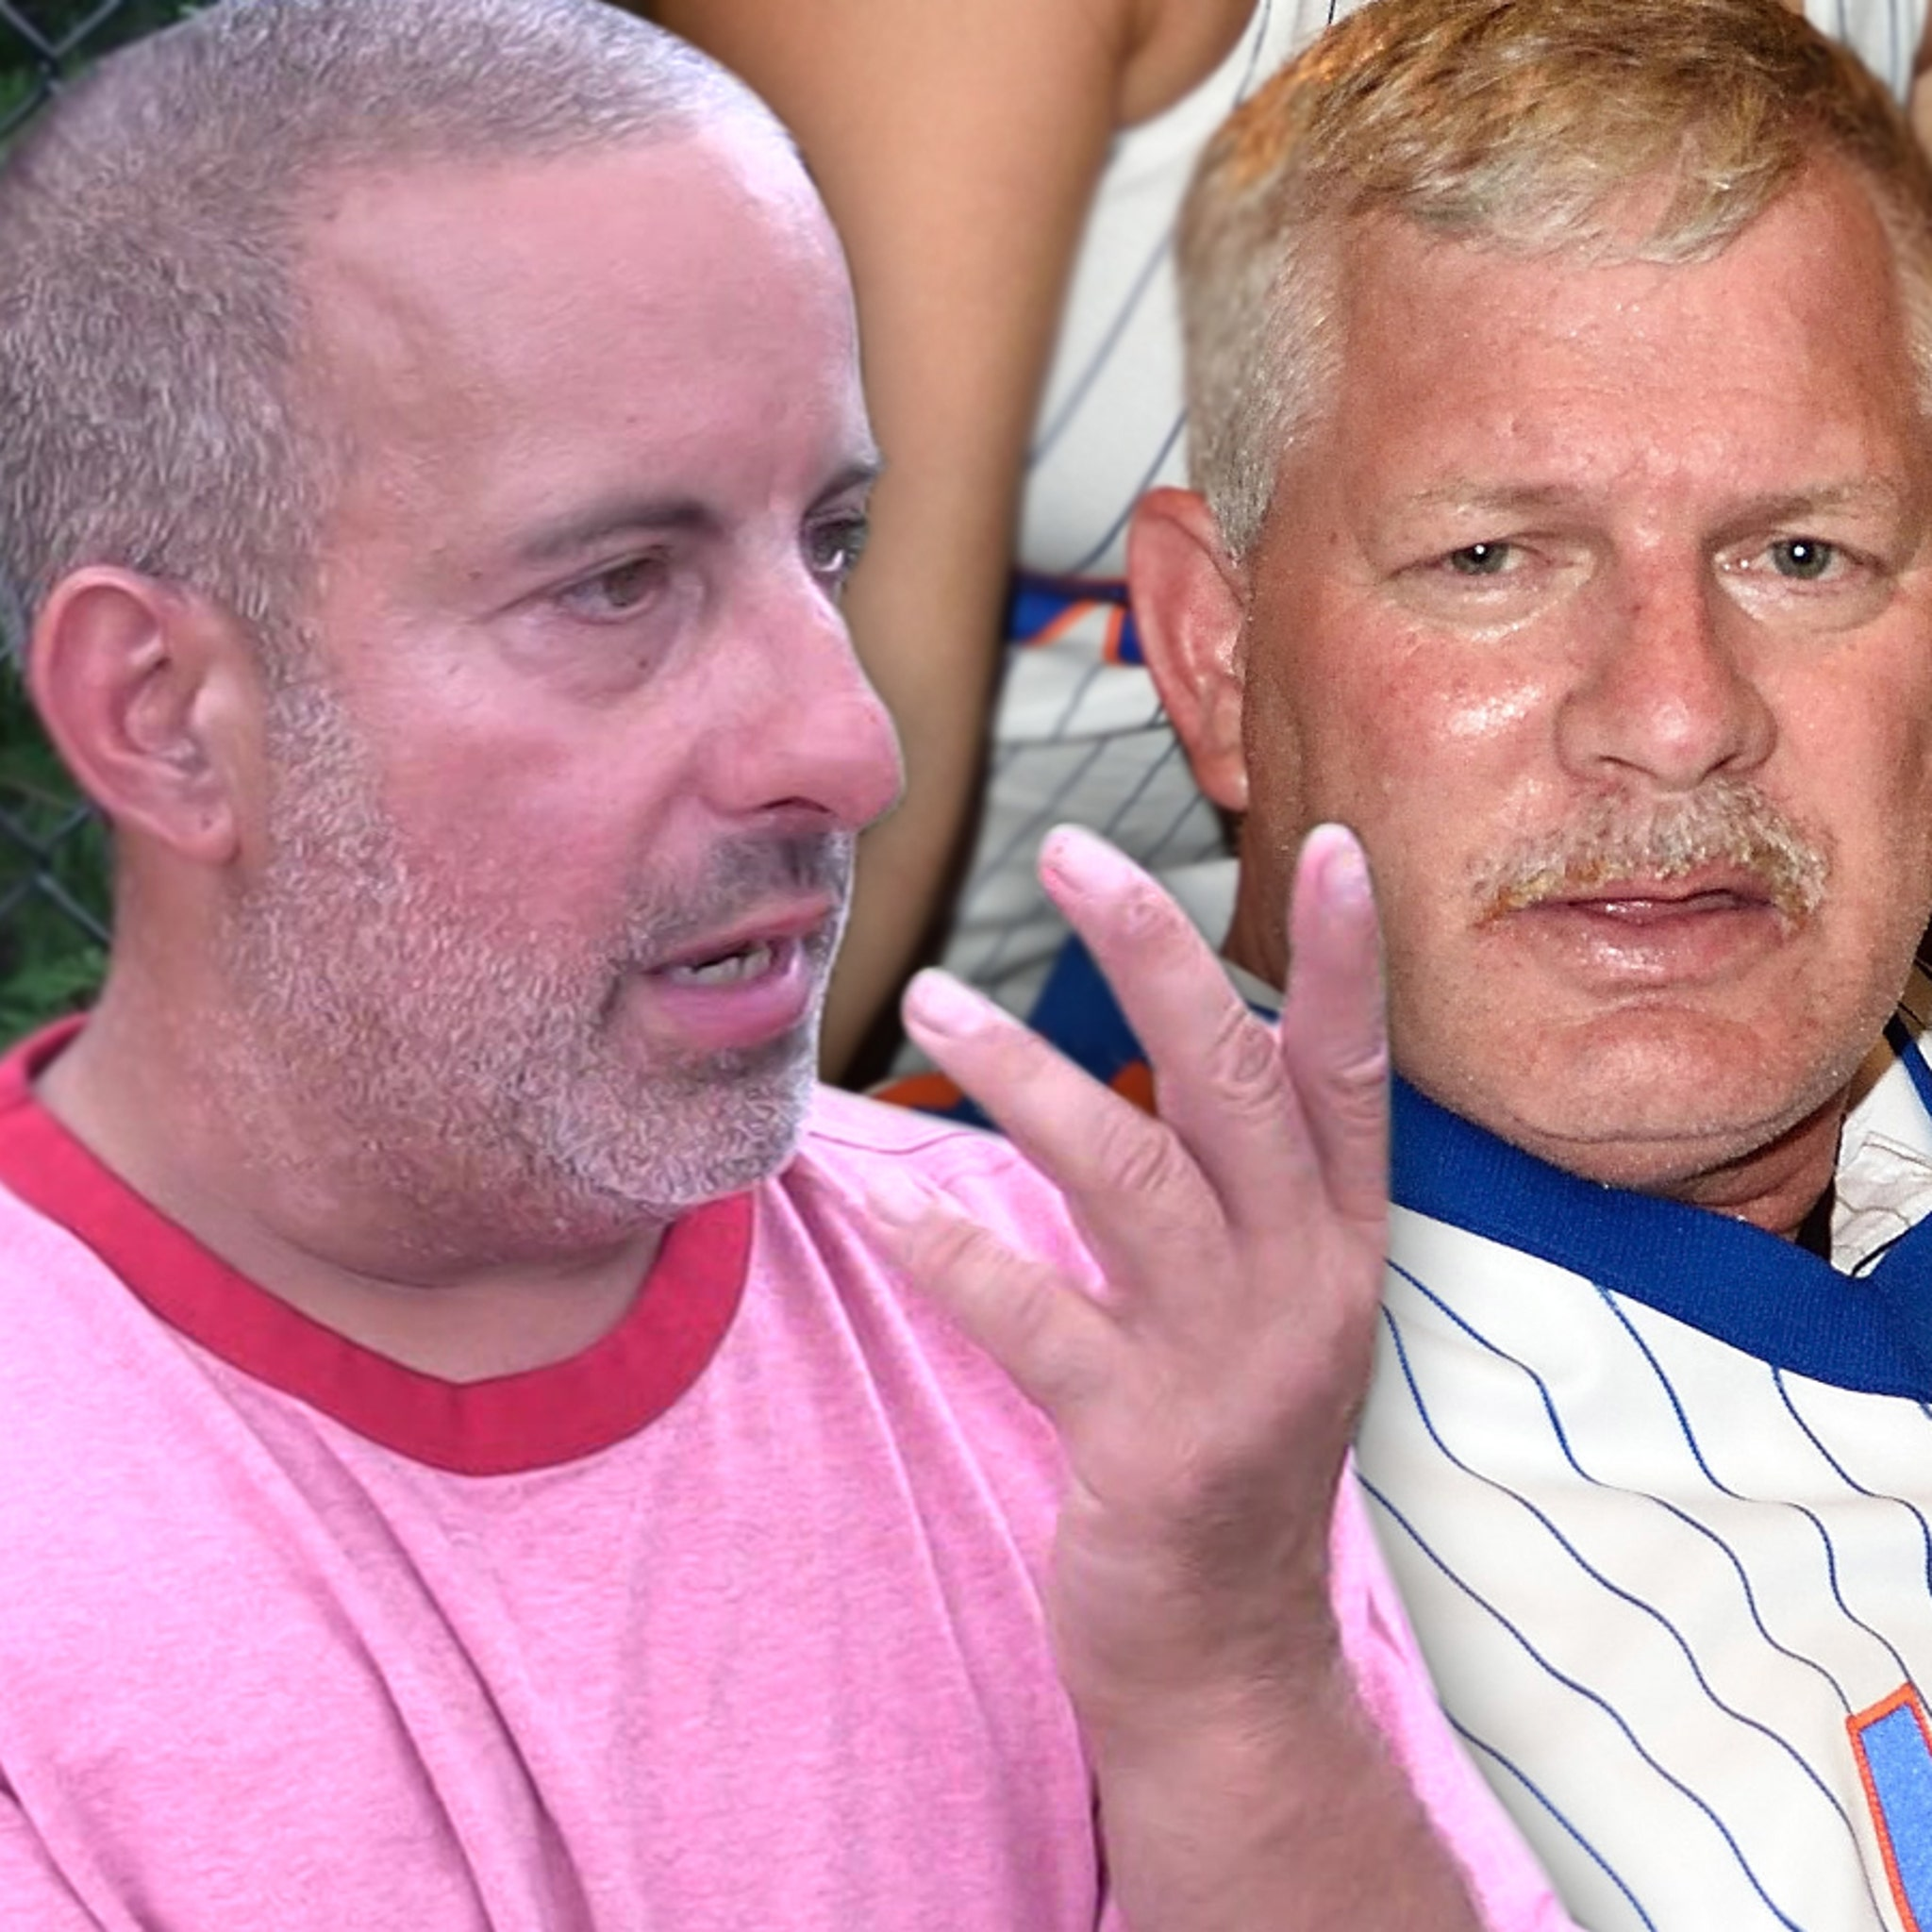 Lenny Dykstra Signs Deal To Fight Bagel Boss Guy